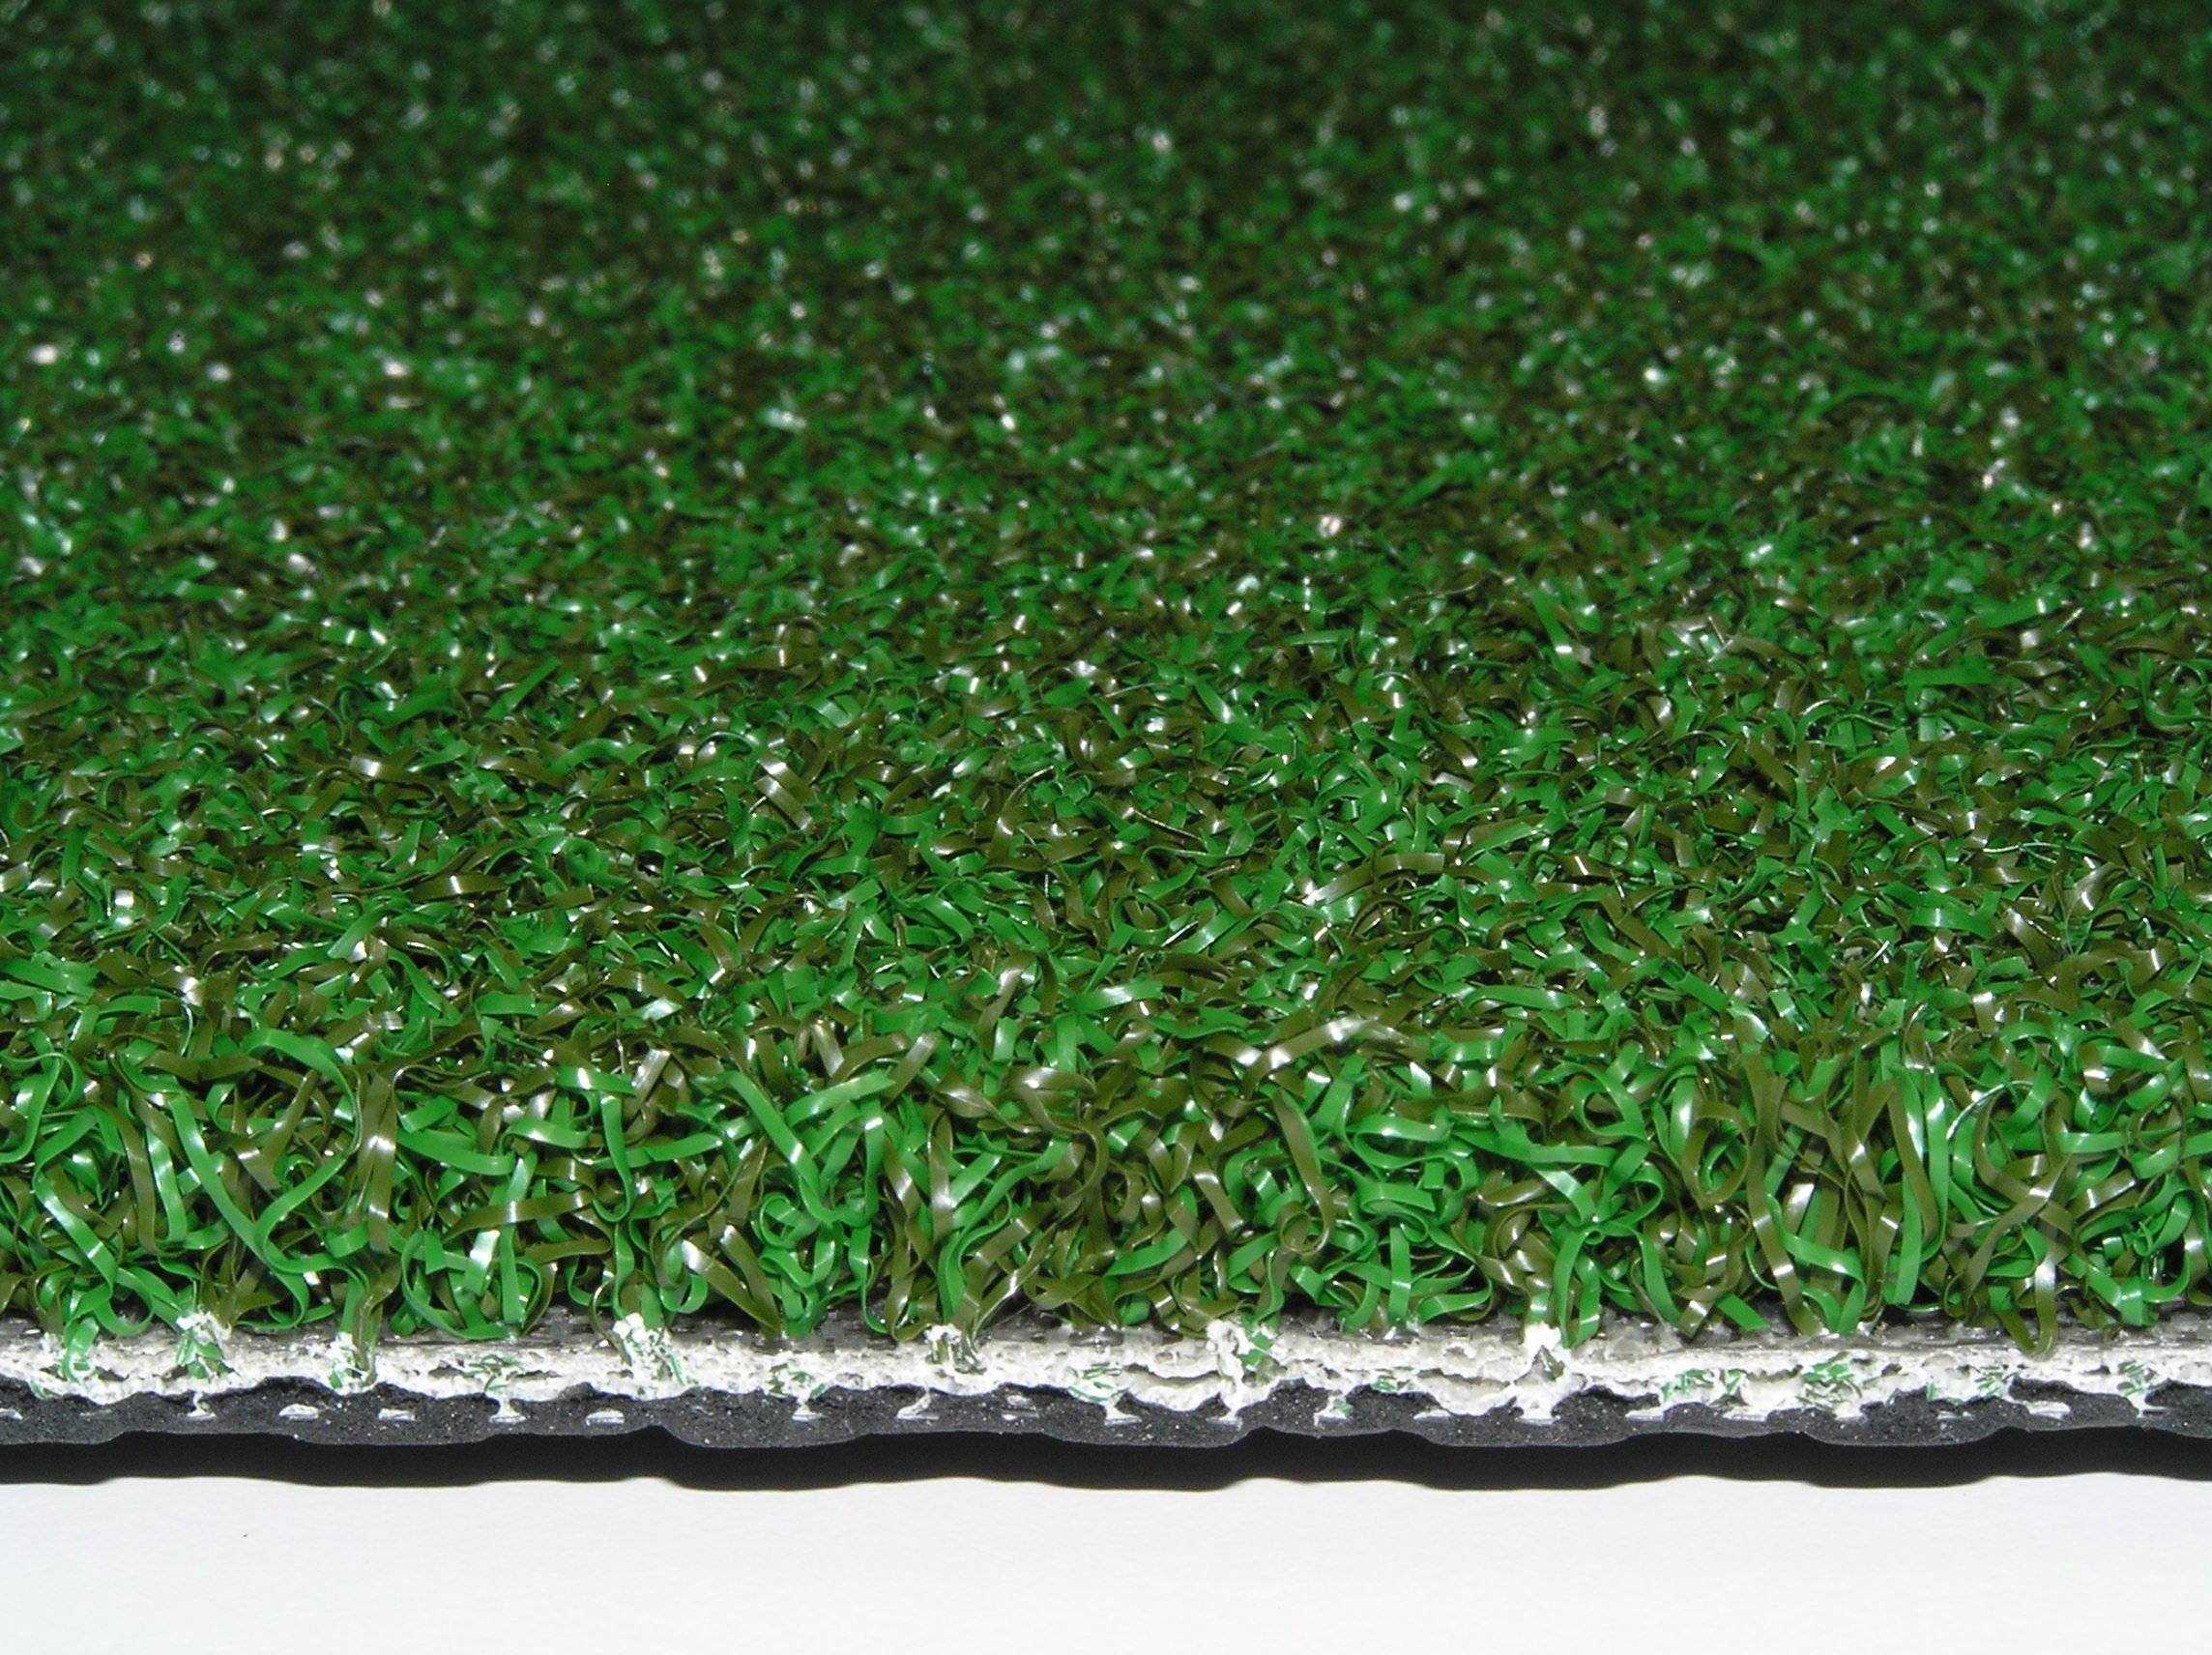 """StarPro 4ft x 12ft 5-Hole Mobile Professional Practice Putting Green ''Best in the World."""" by StarPro Greens (Image #2)"""